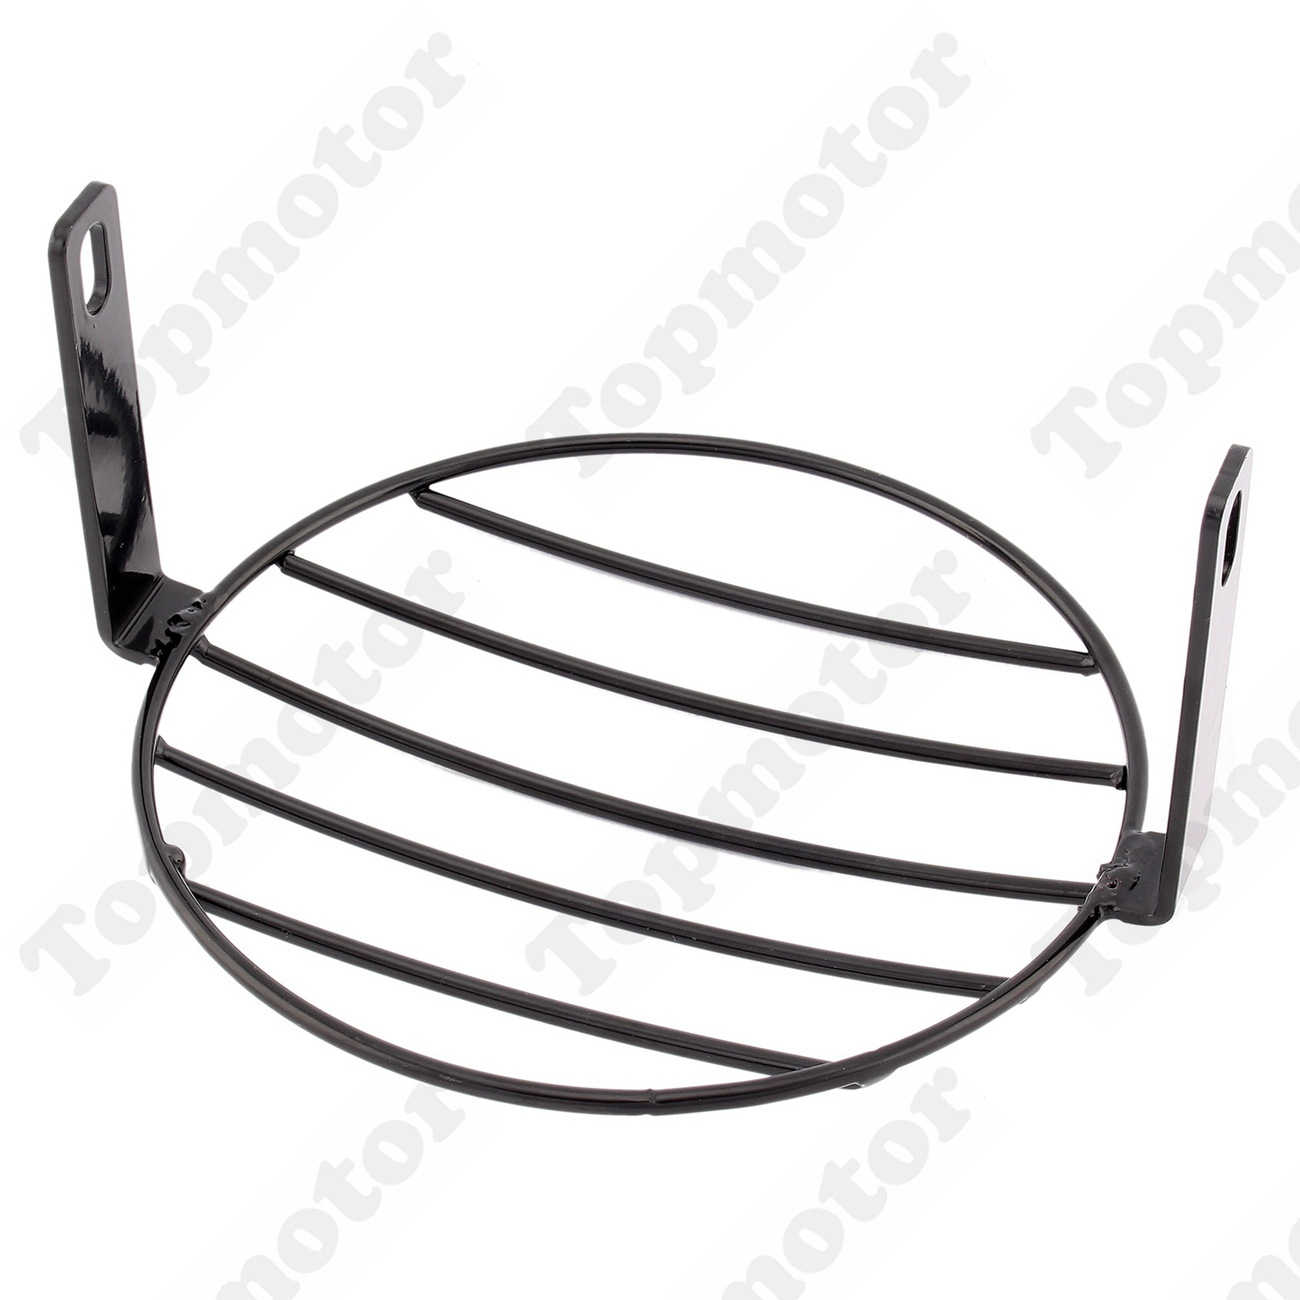 Black Vintage Grill Motorcycle Side Mount Headlight Cover